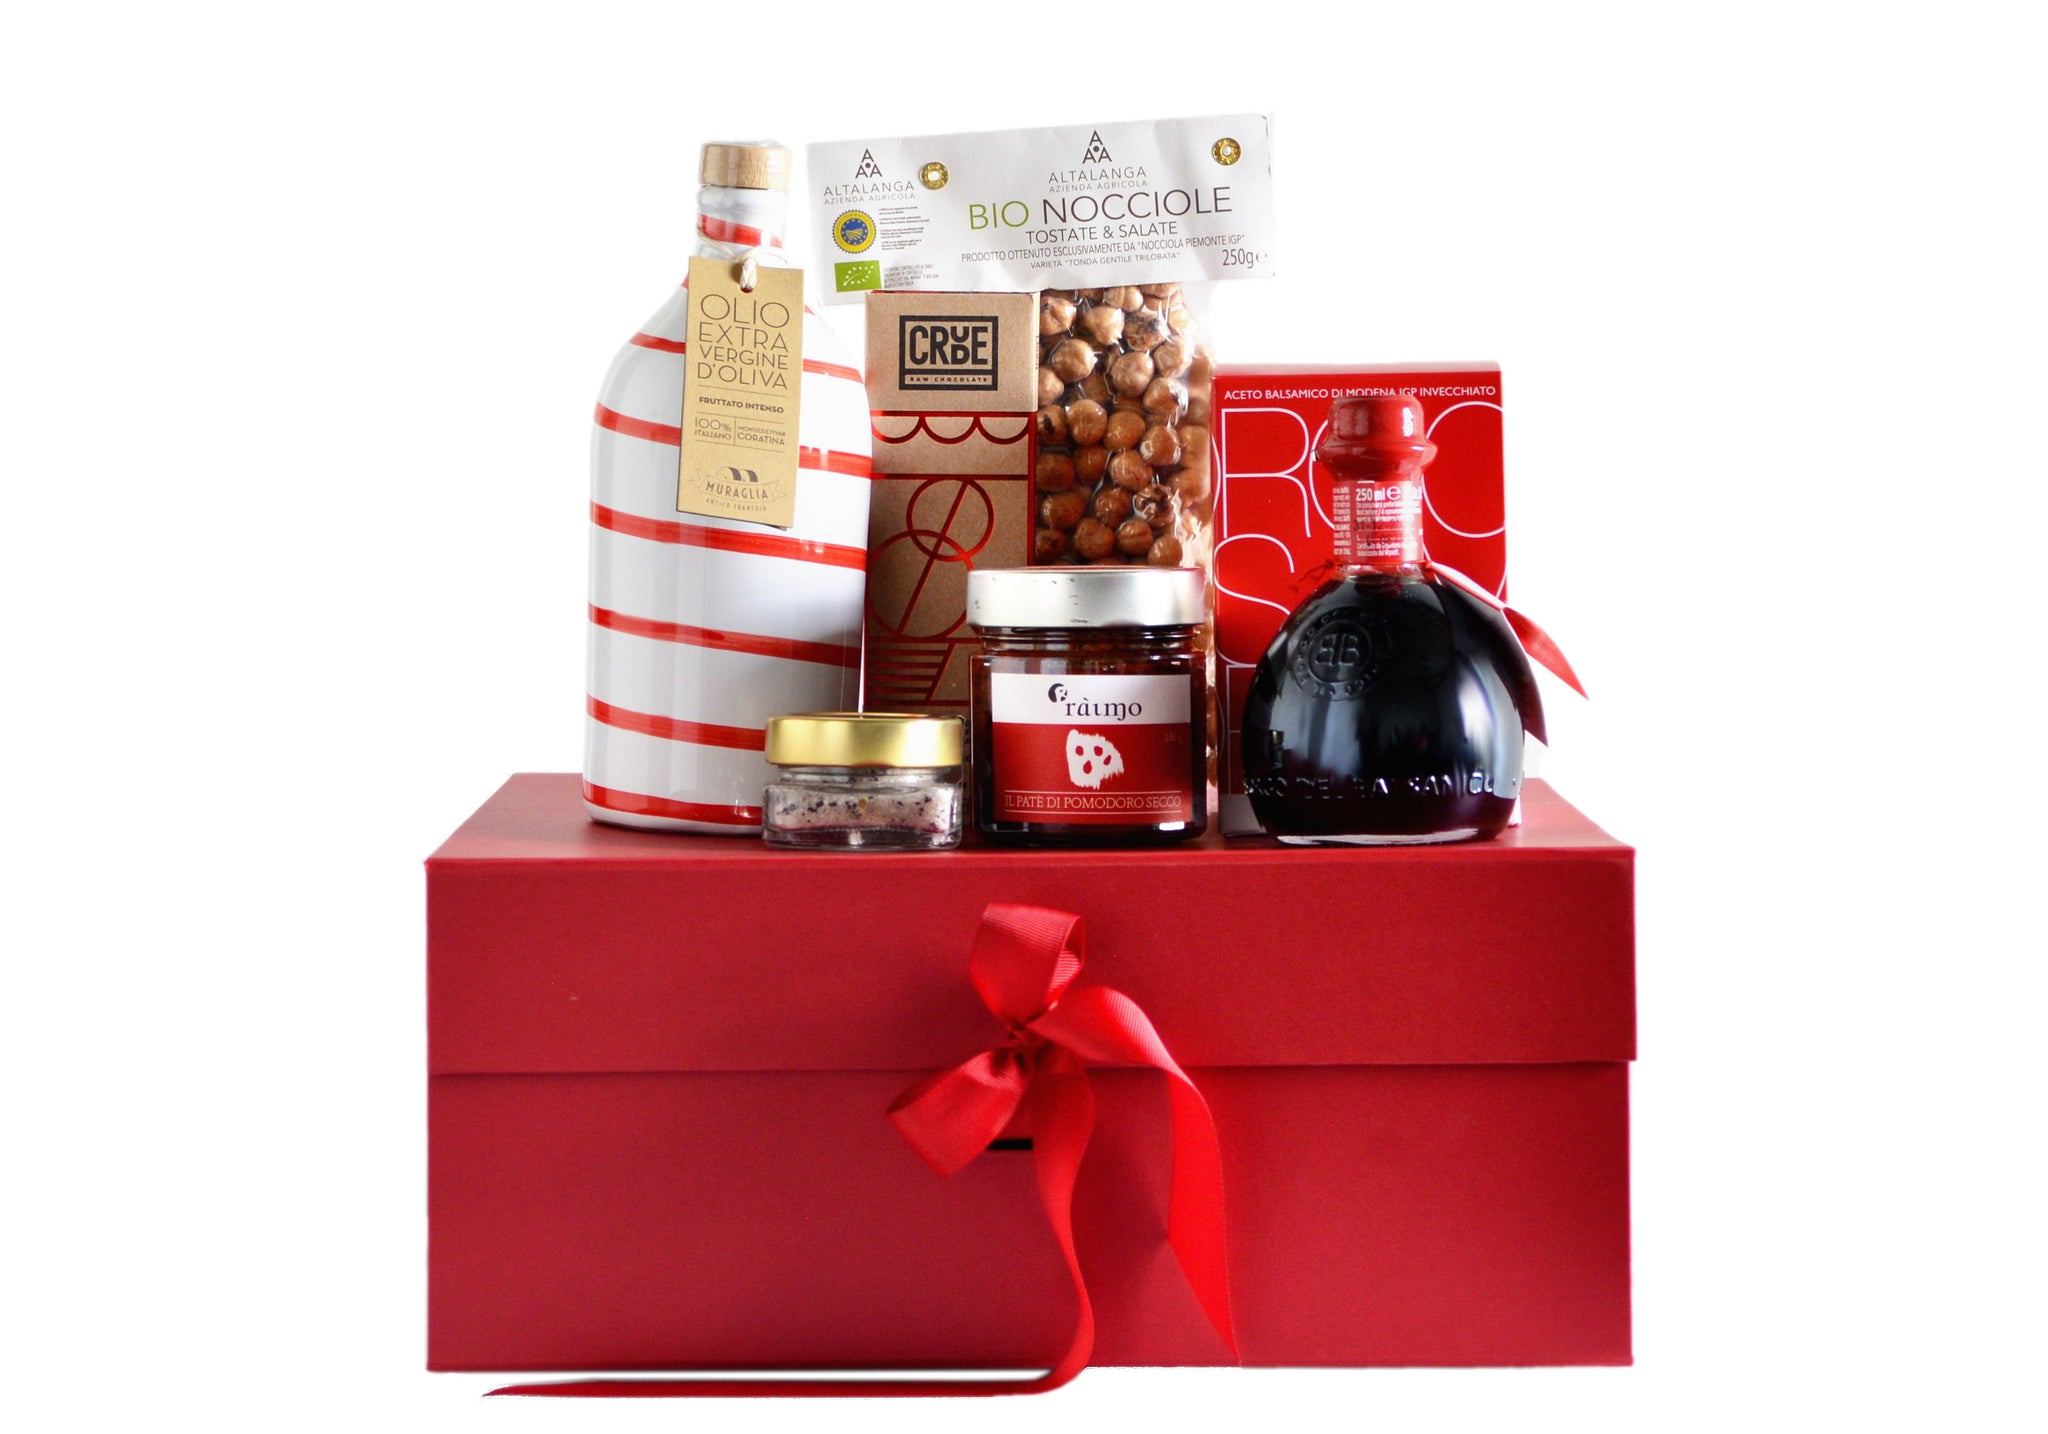 Red's Christmas Box. A Luxurious Box of Delicious Italian Food